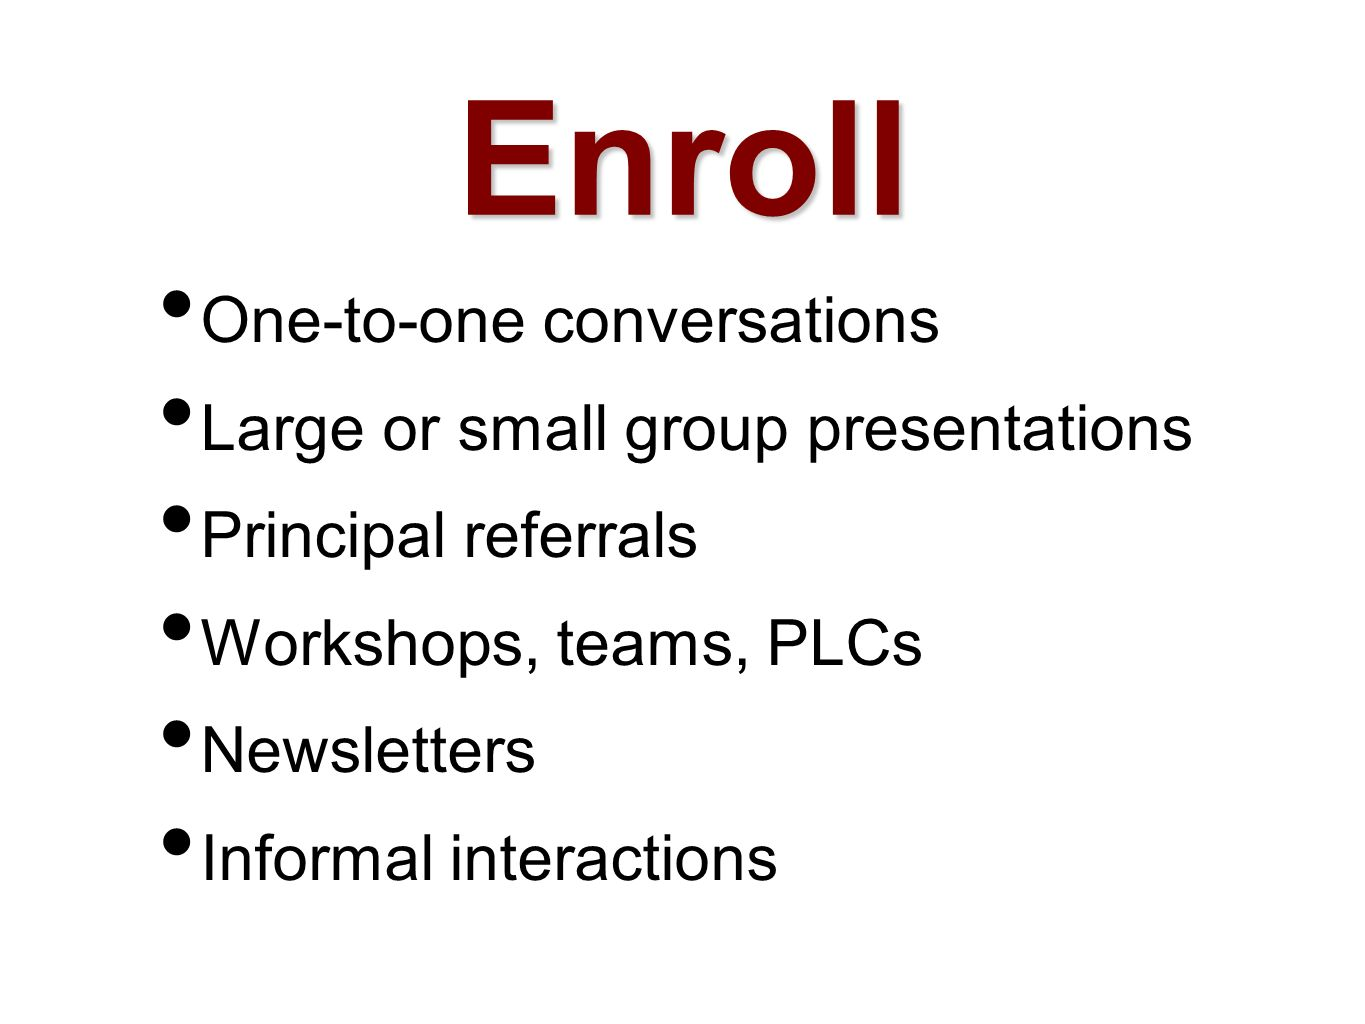 One-to-one conversations Large or small group presentations Principal referrals Workshops, teams, PLCs Newsletters Informal interactions Enroll